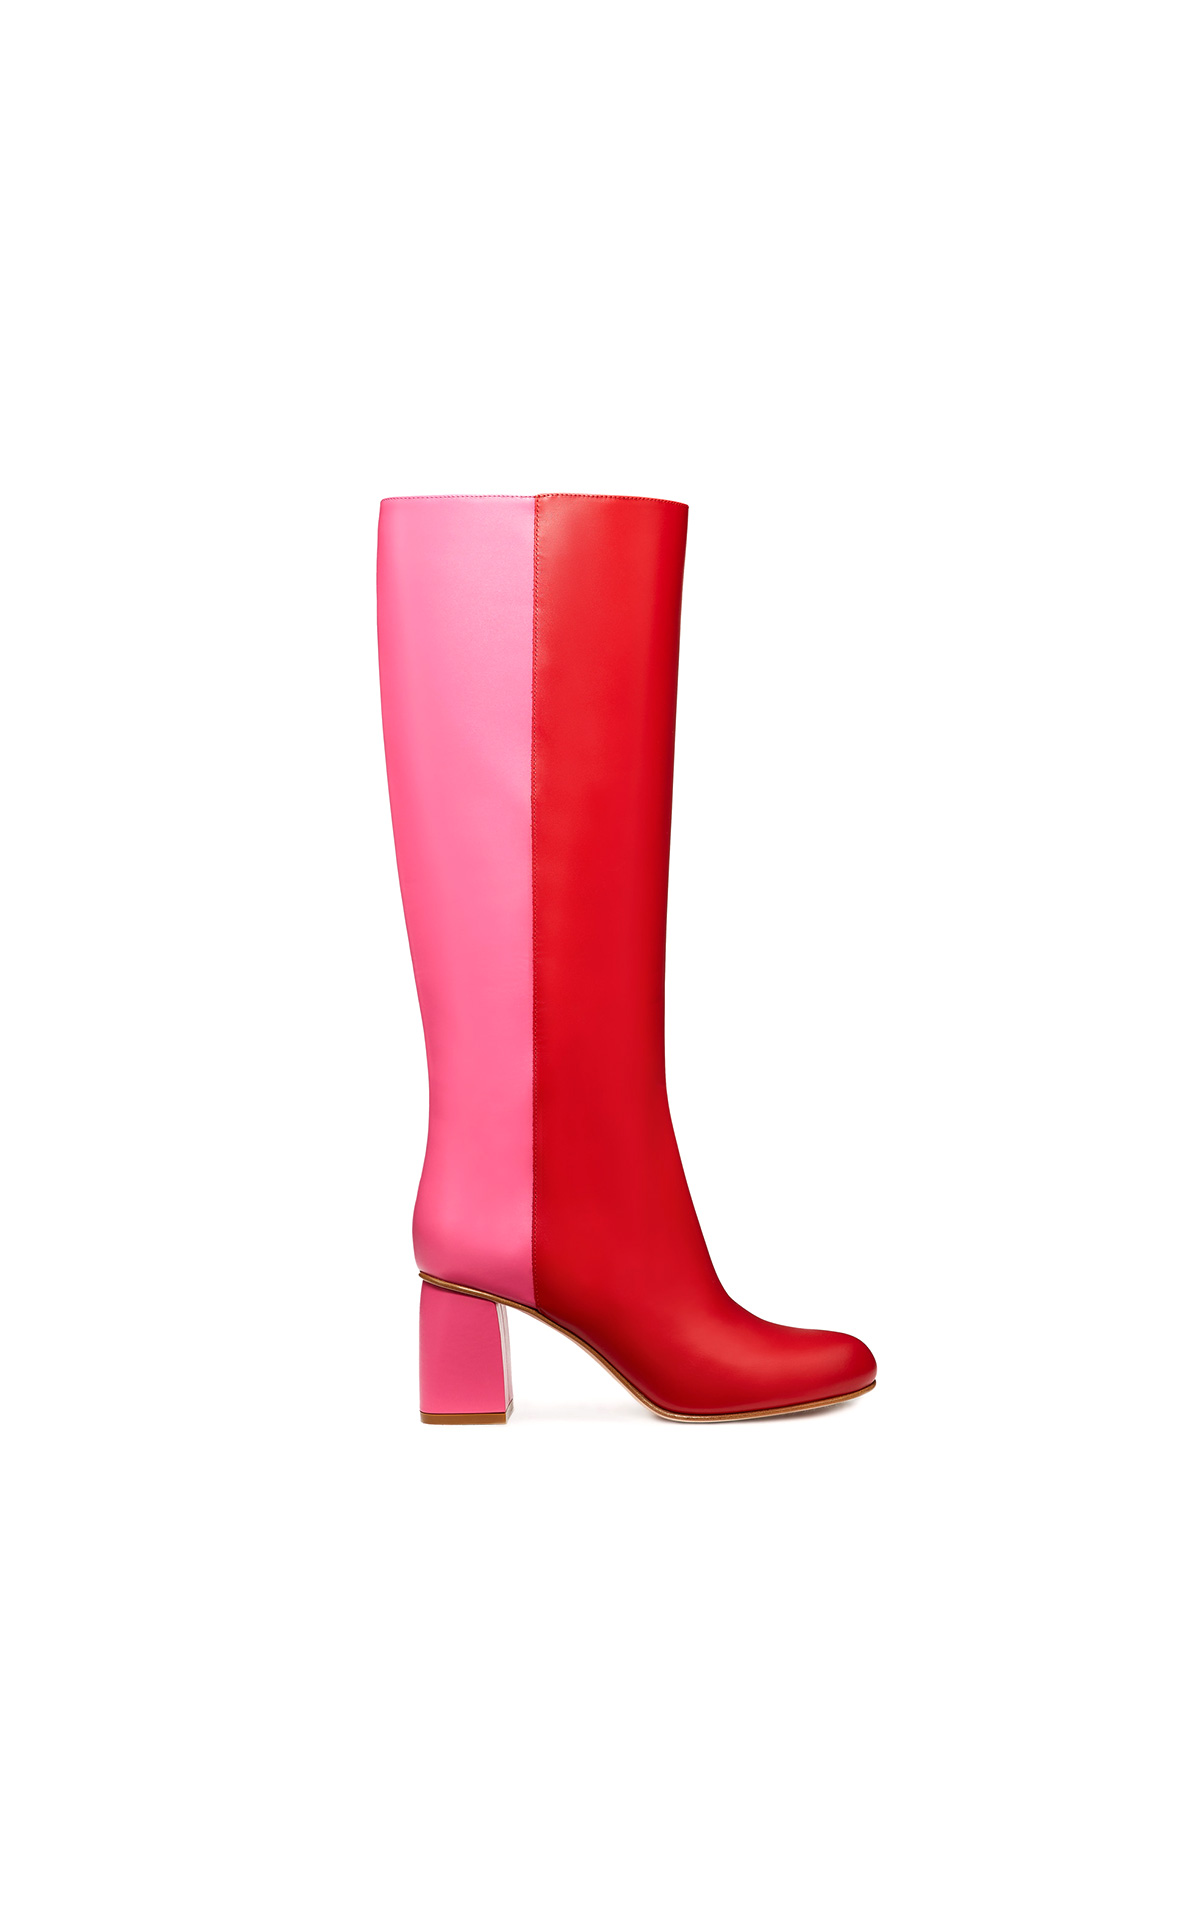 REDValentino Red and pink two-coloured boots | La Vallée Village